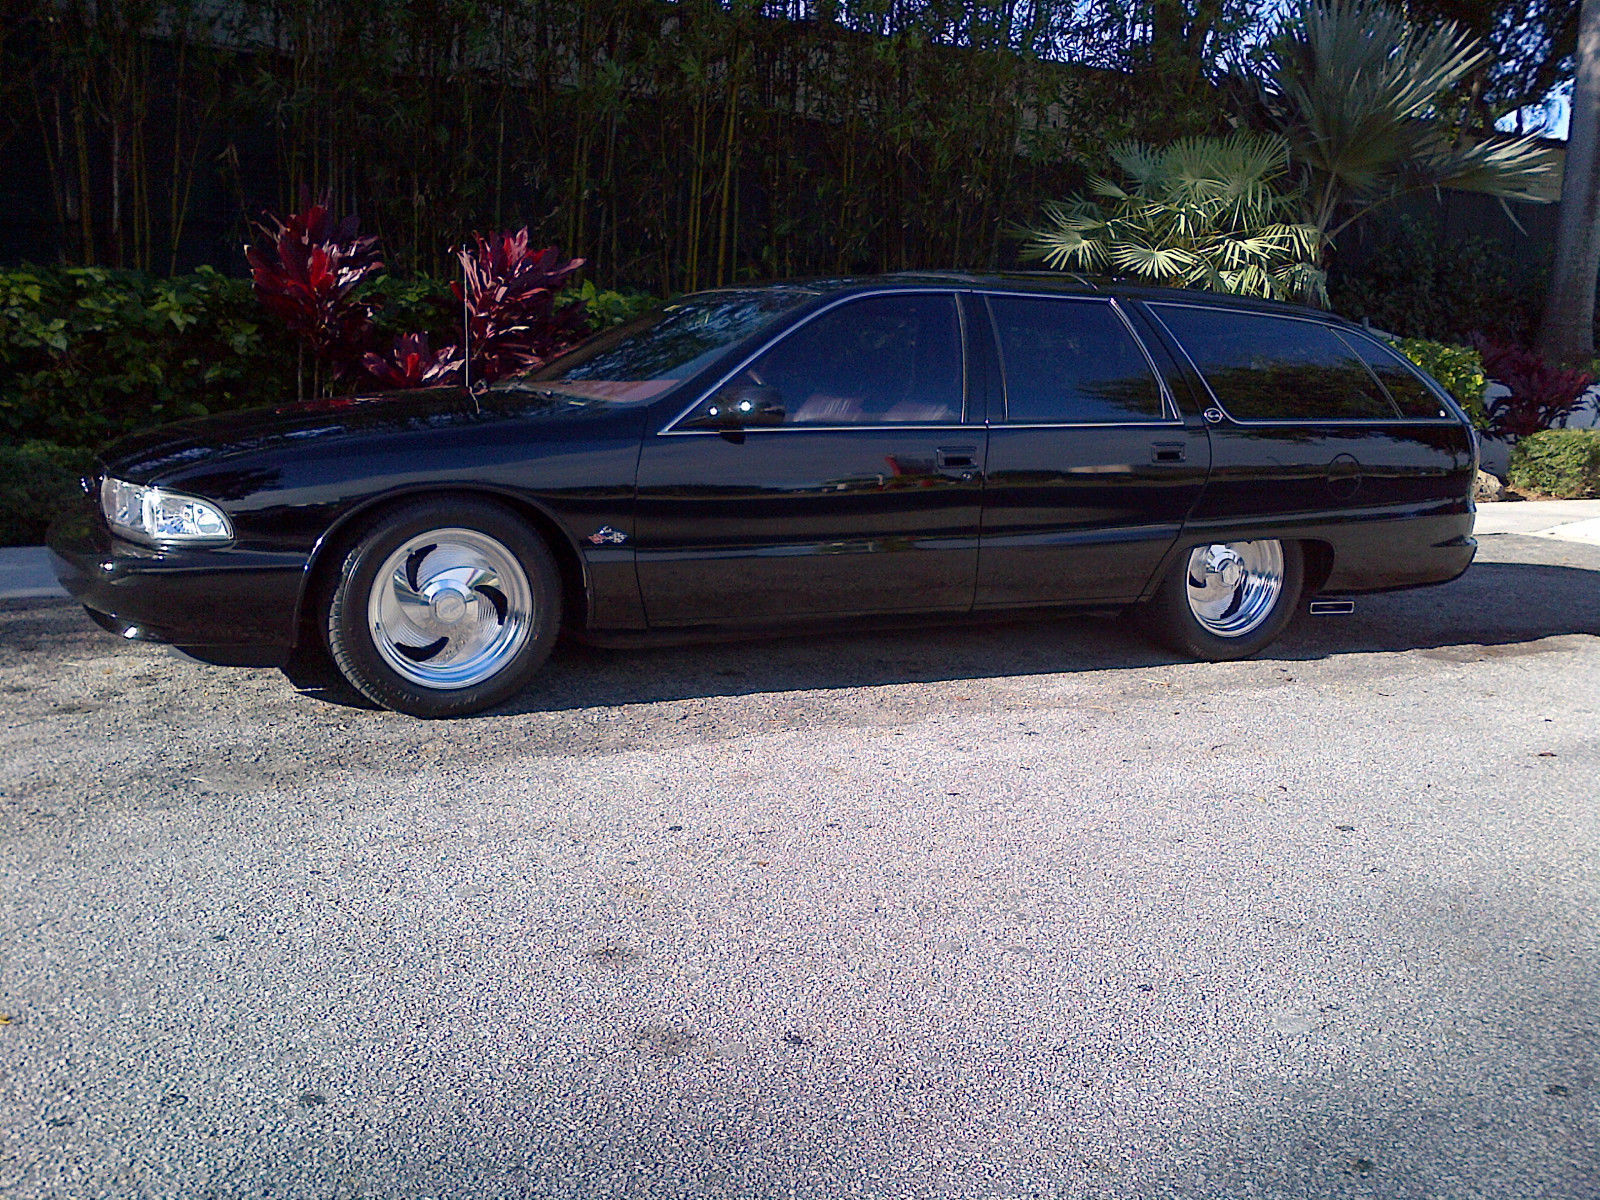 1994 Chevrolet Impala Ss Conversion From Buick Estate